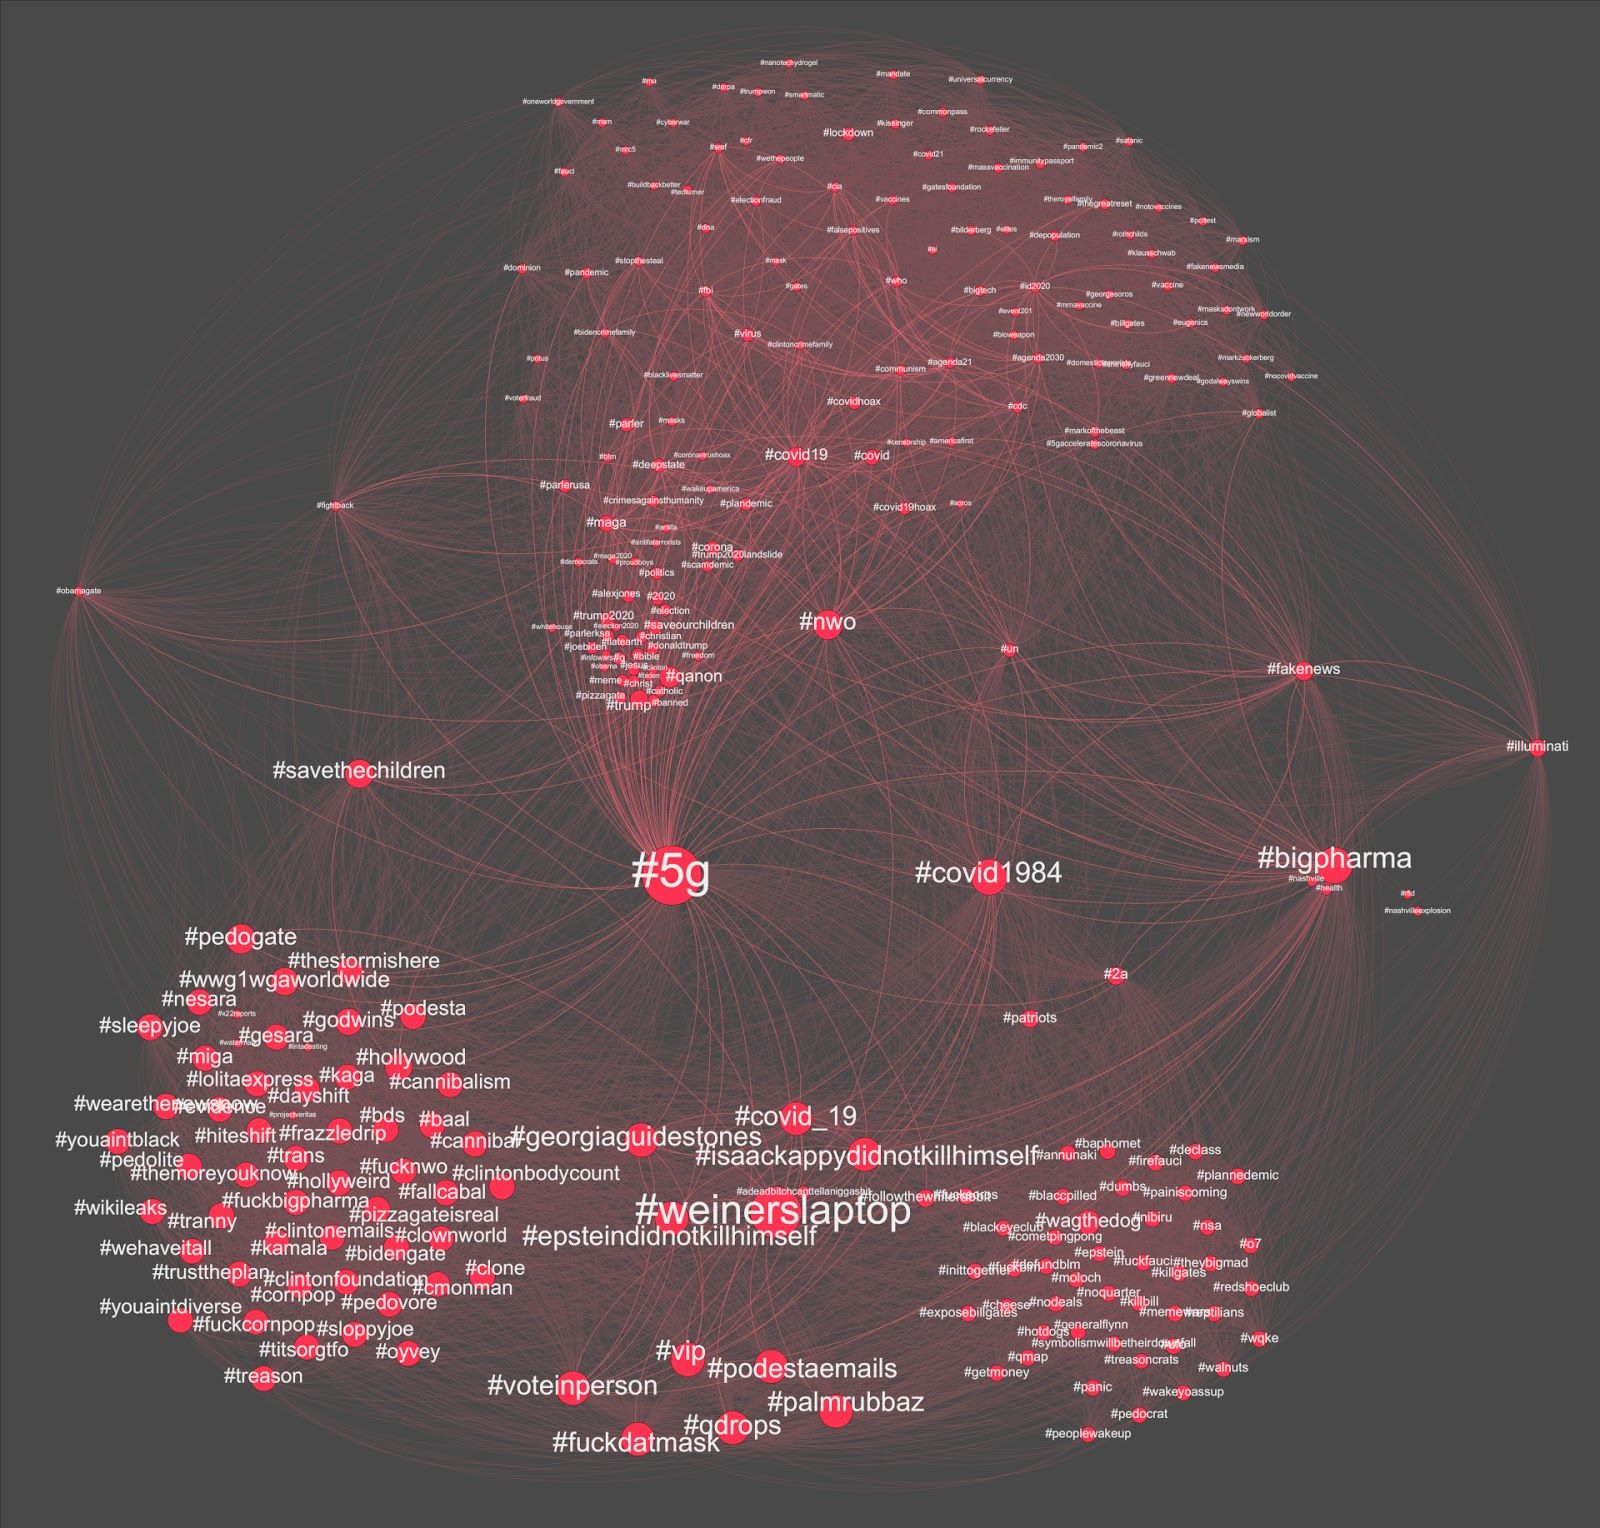 Figure 2: Co-hashtag network visualization of top 200 most engaged posts on Parler